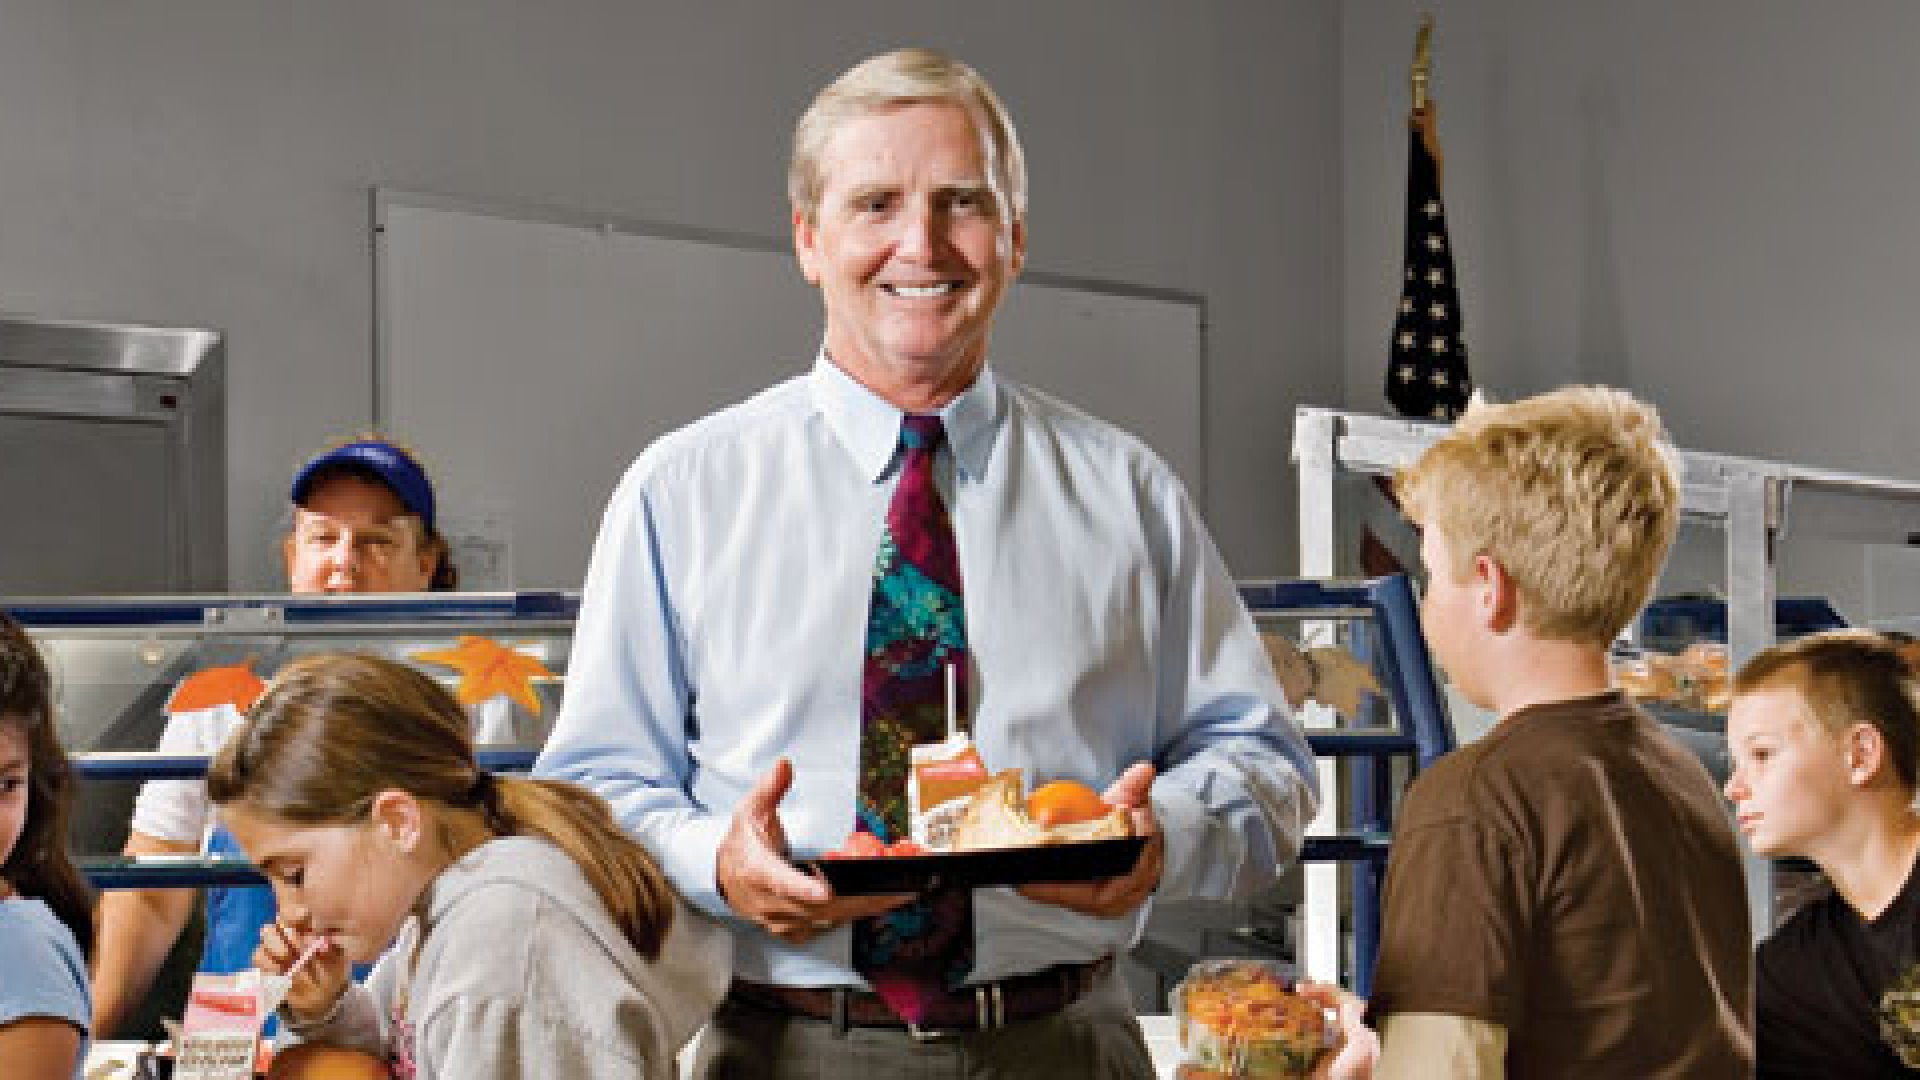 Bob Williamson hopes his food-tracking software will help kids eat smarter.